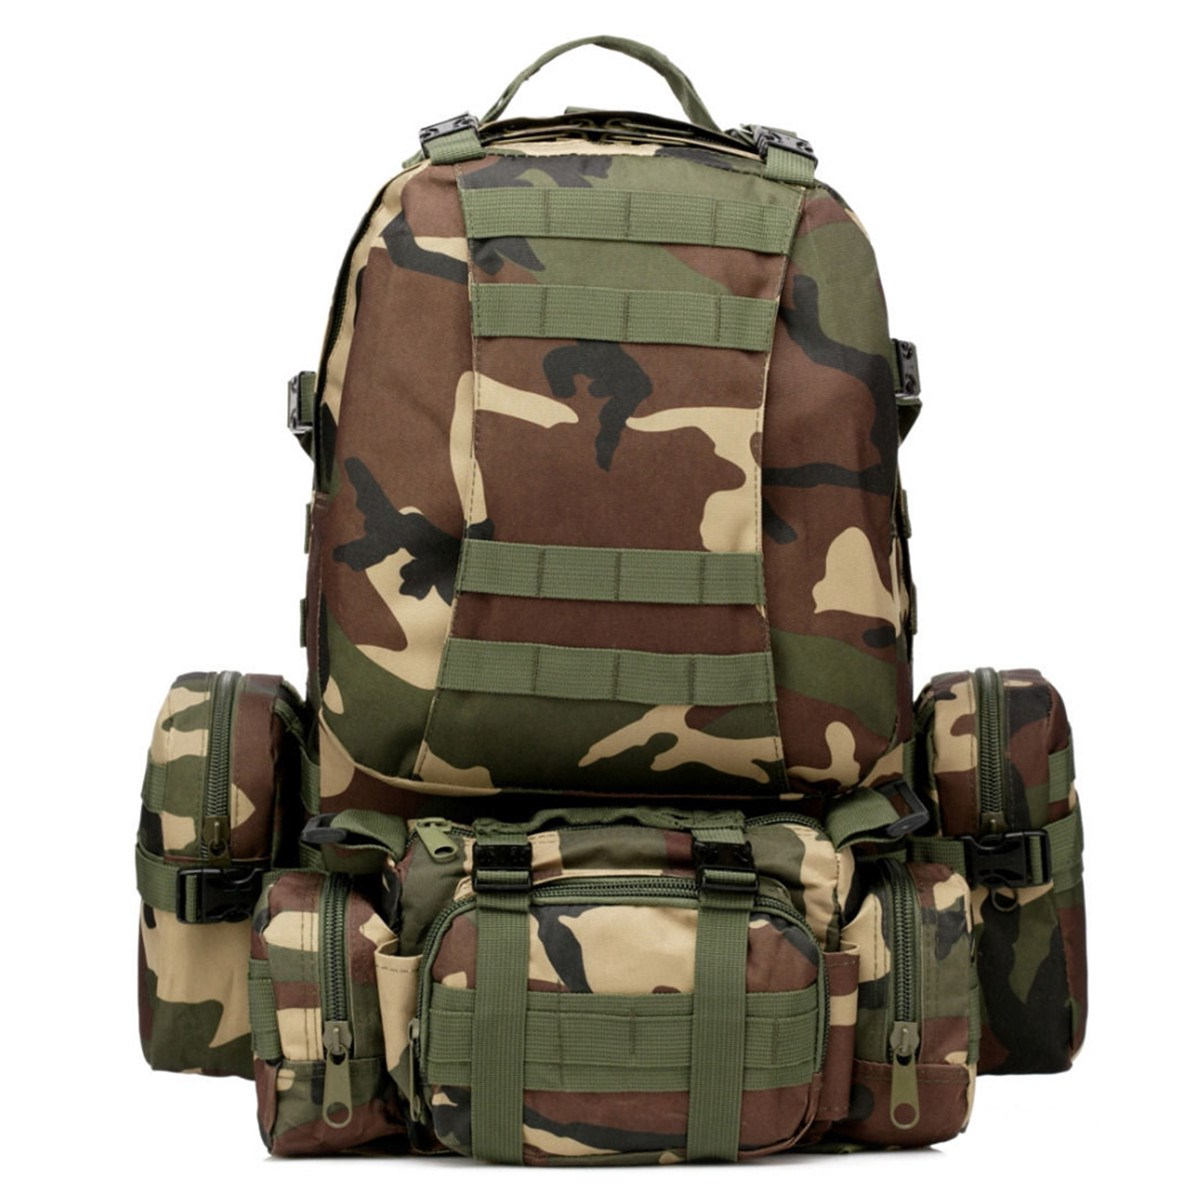 55L Outdoor camo 4 in 1 Molle 600D Military Tactical Backpack Camping hiking hunting climbing Rucksack mountaineering men bags 55l molle combination backpack hiking camping mountaineer military backpack outdoor bag tactical trekking rucksack backpack camo